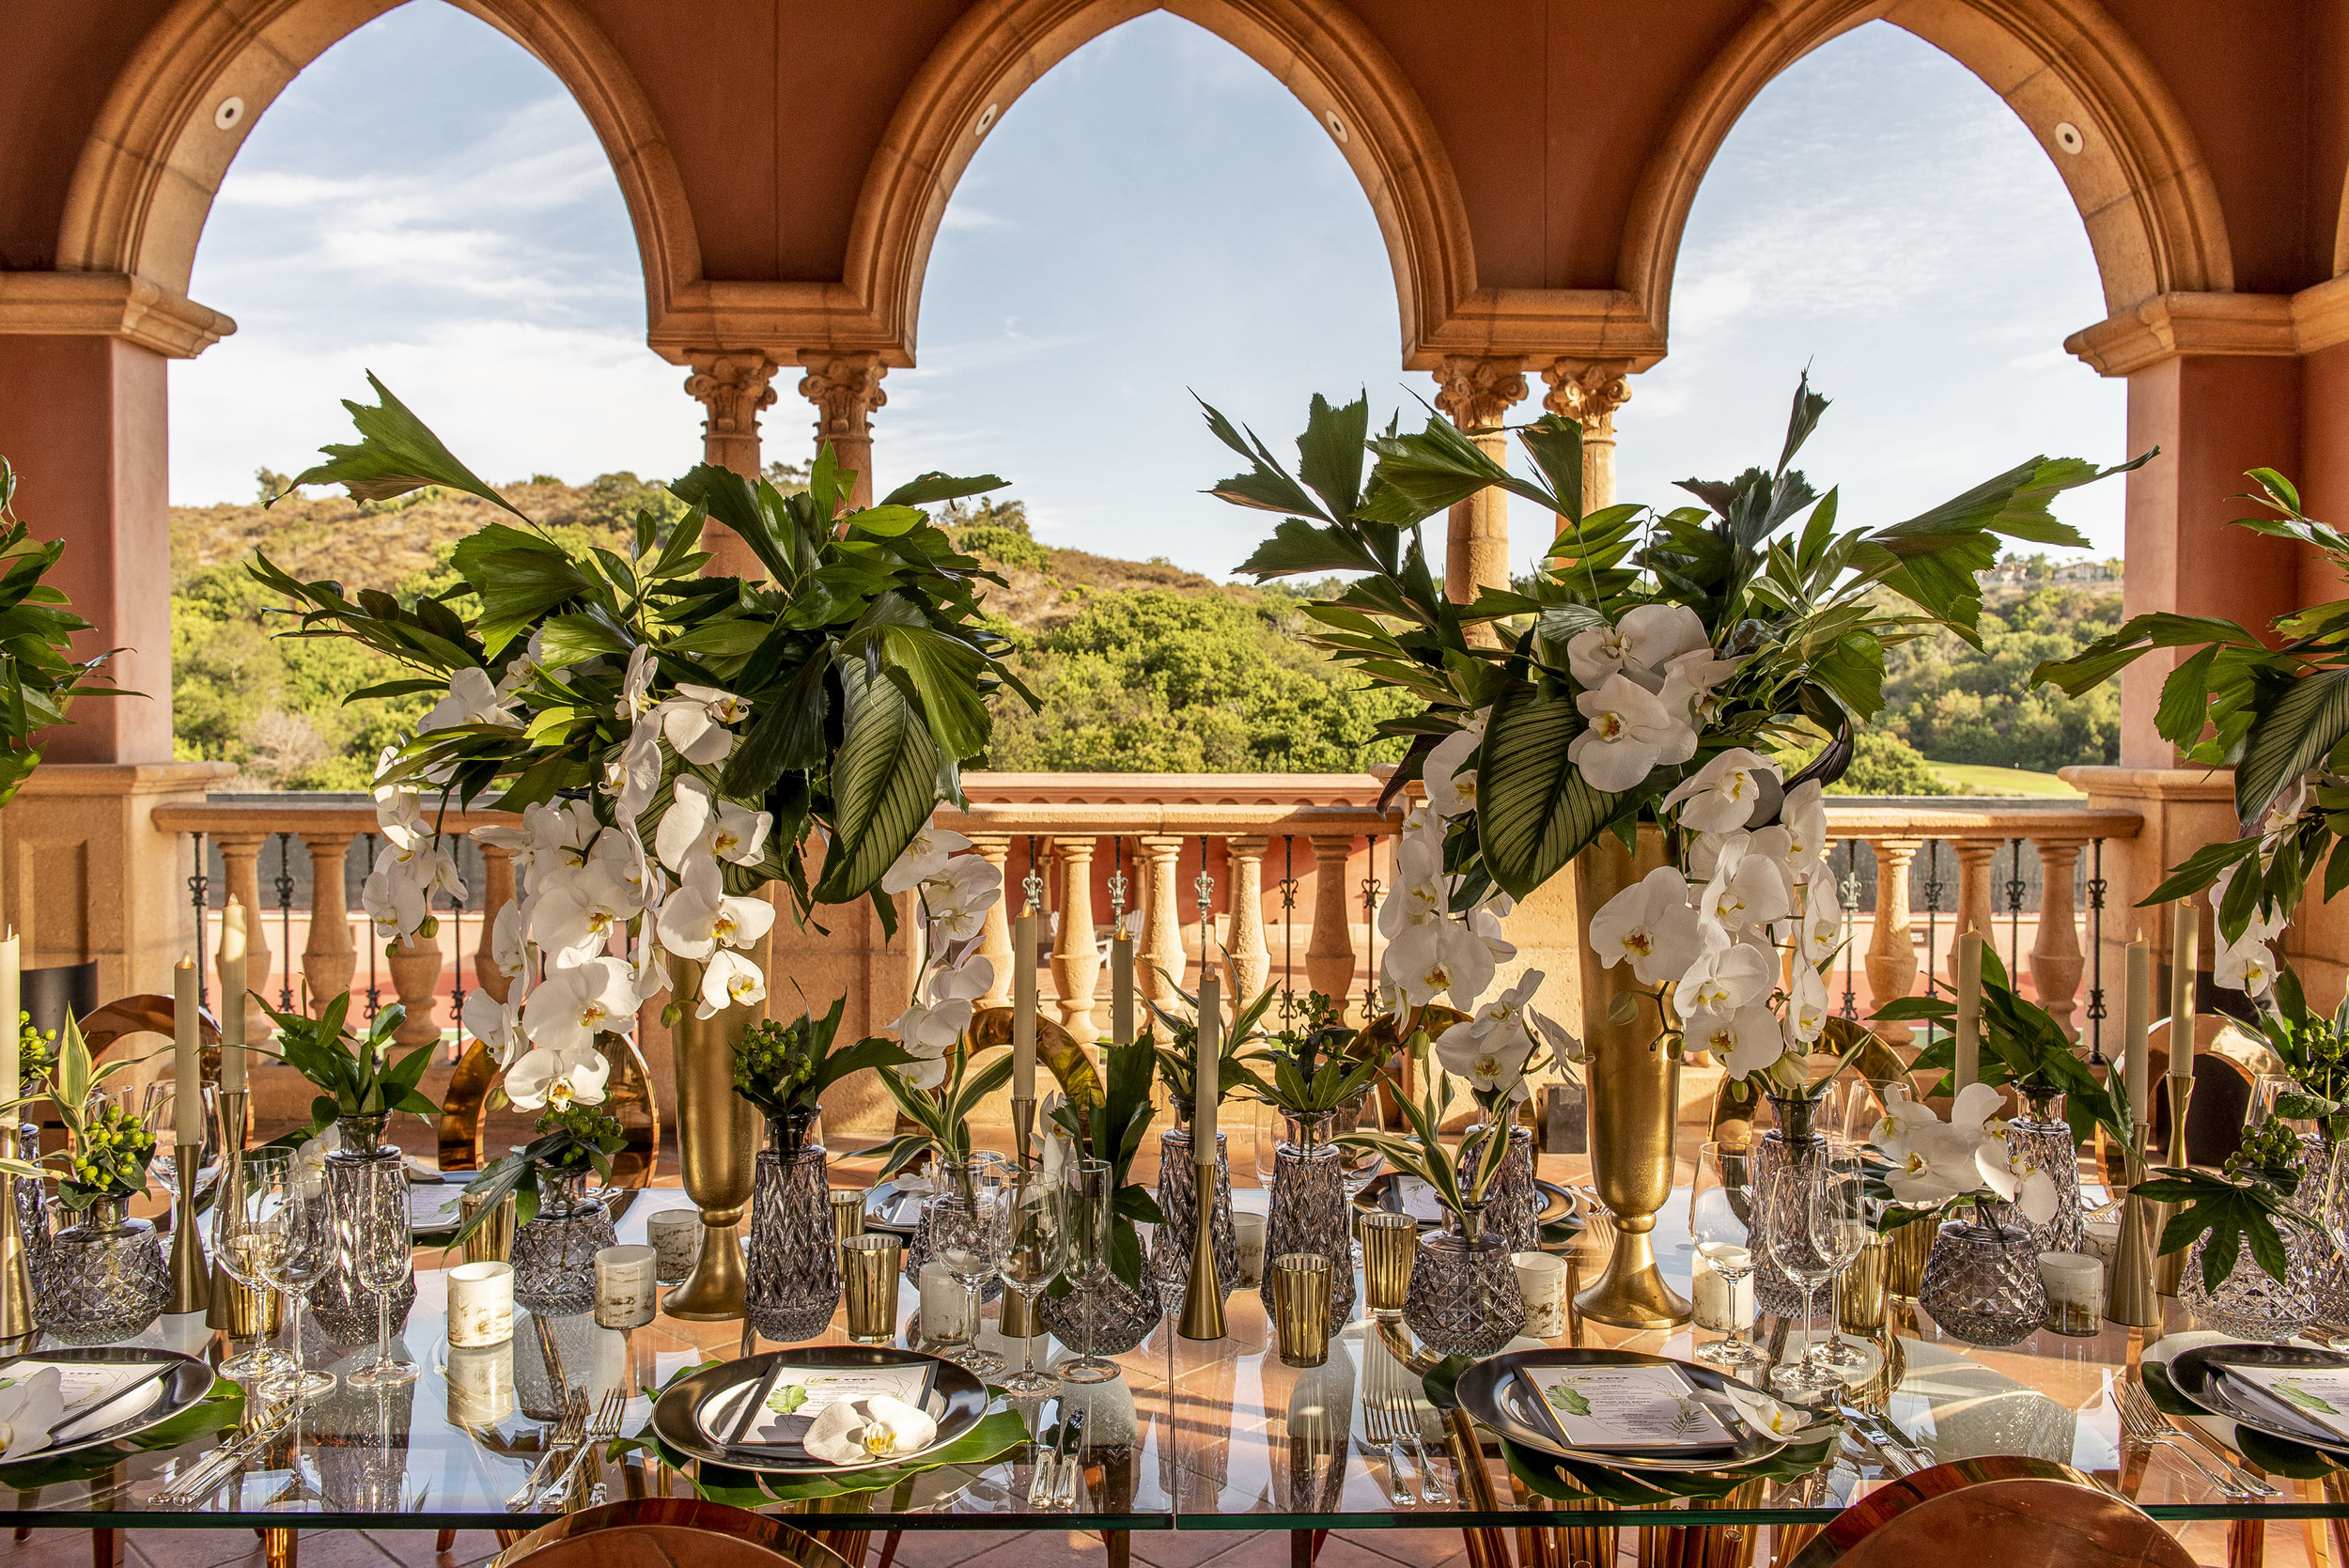 Tropical wedding centerpiece at the Fairmont Grand Del Mar. Wedding Planner www.andreaeppolitoevents.com. Photo by Boyd Harris.